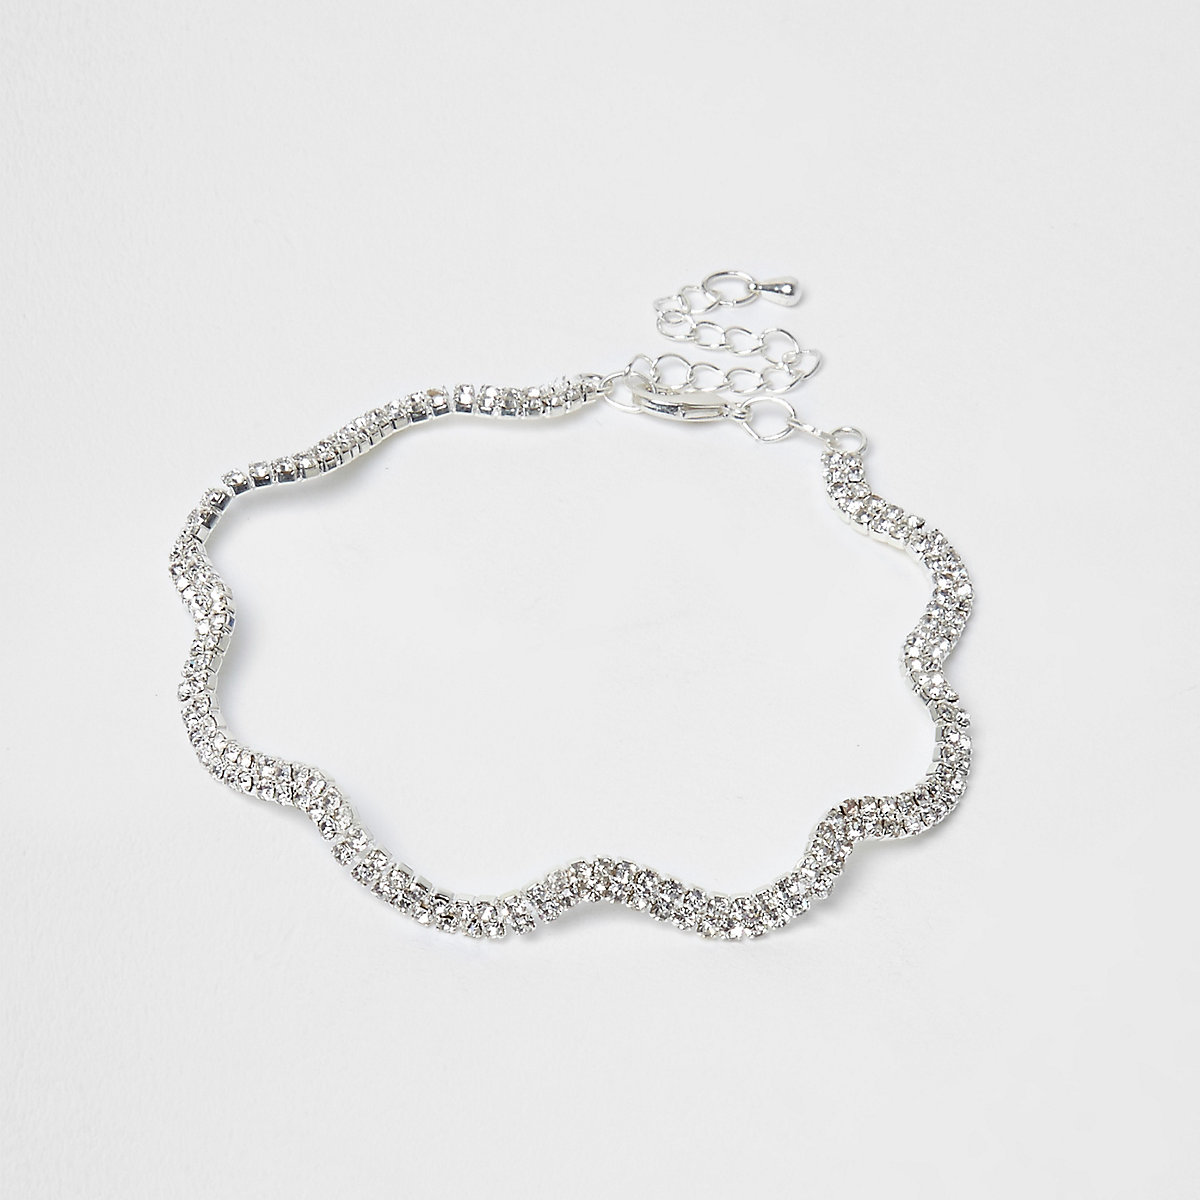 Silver color rhinestone wavy anklet